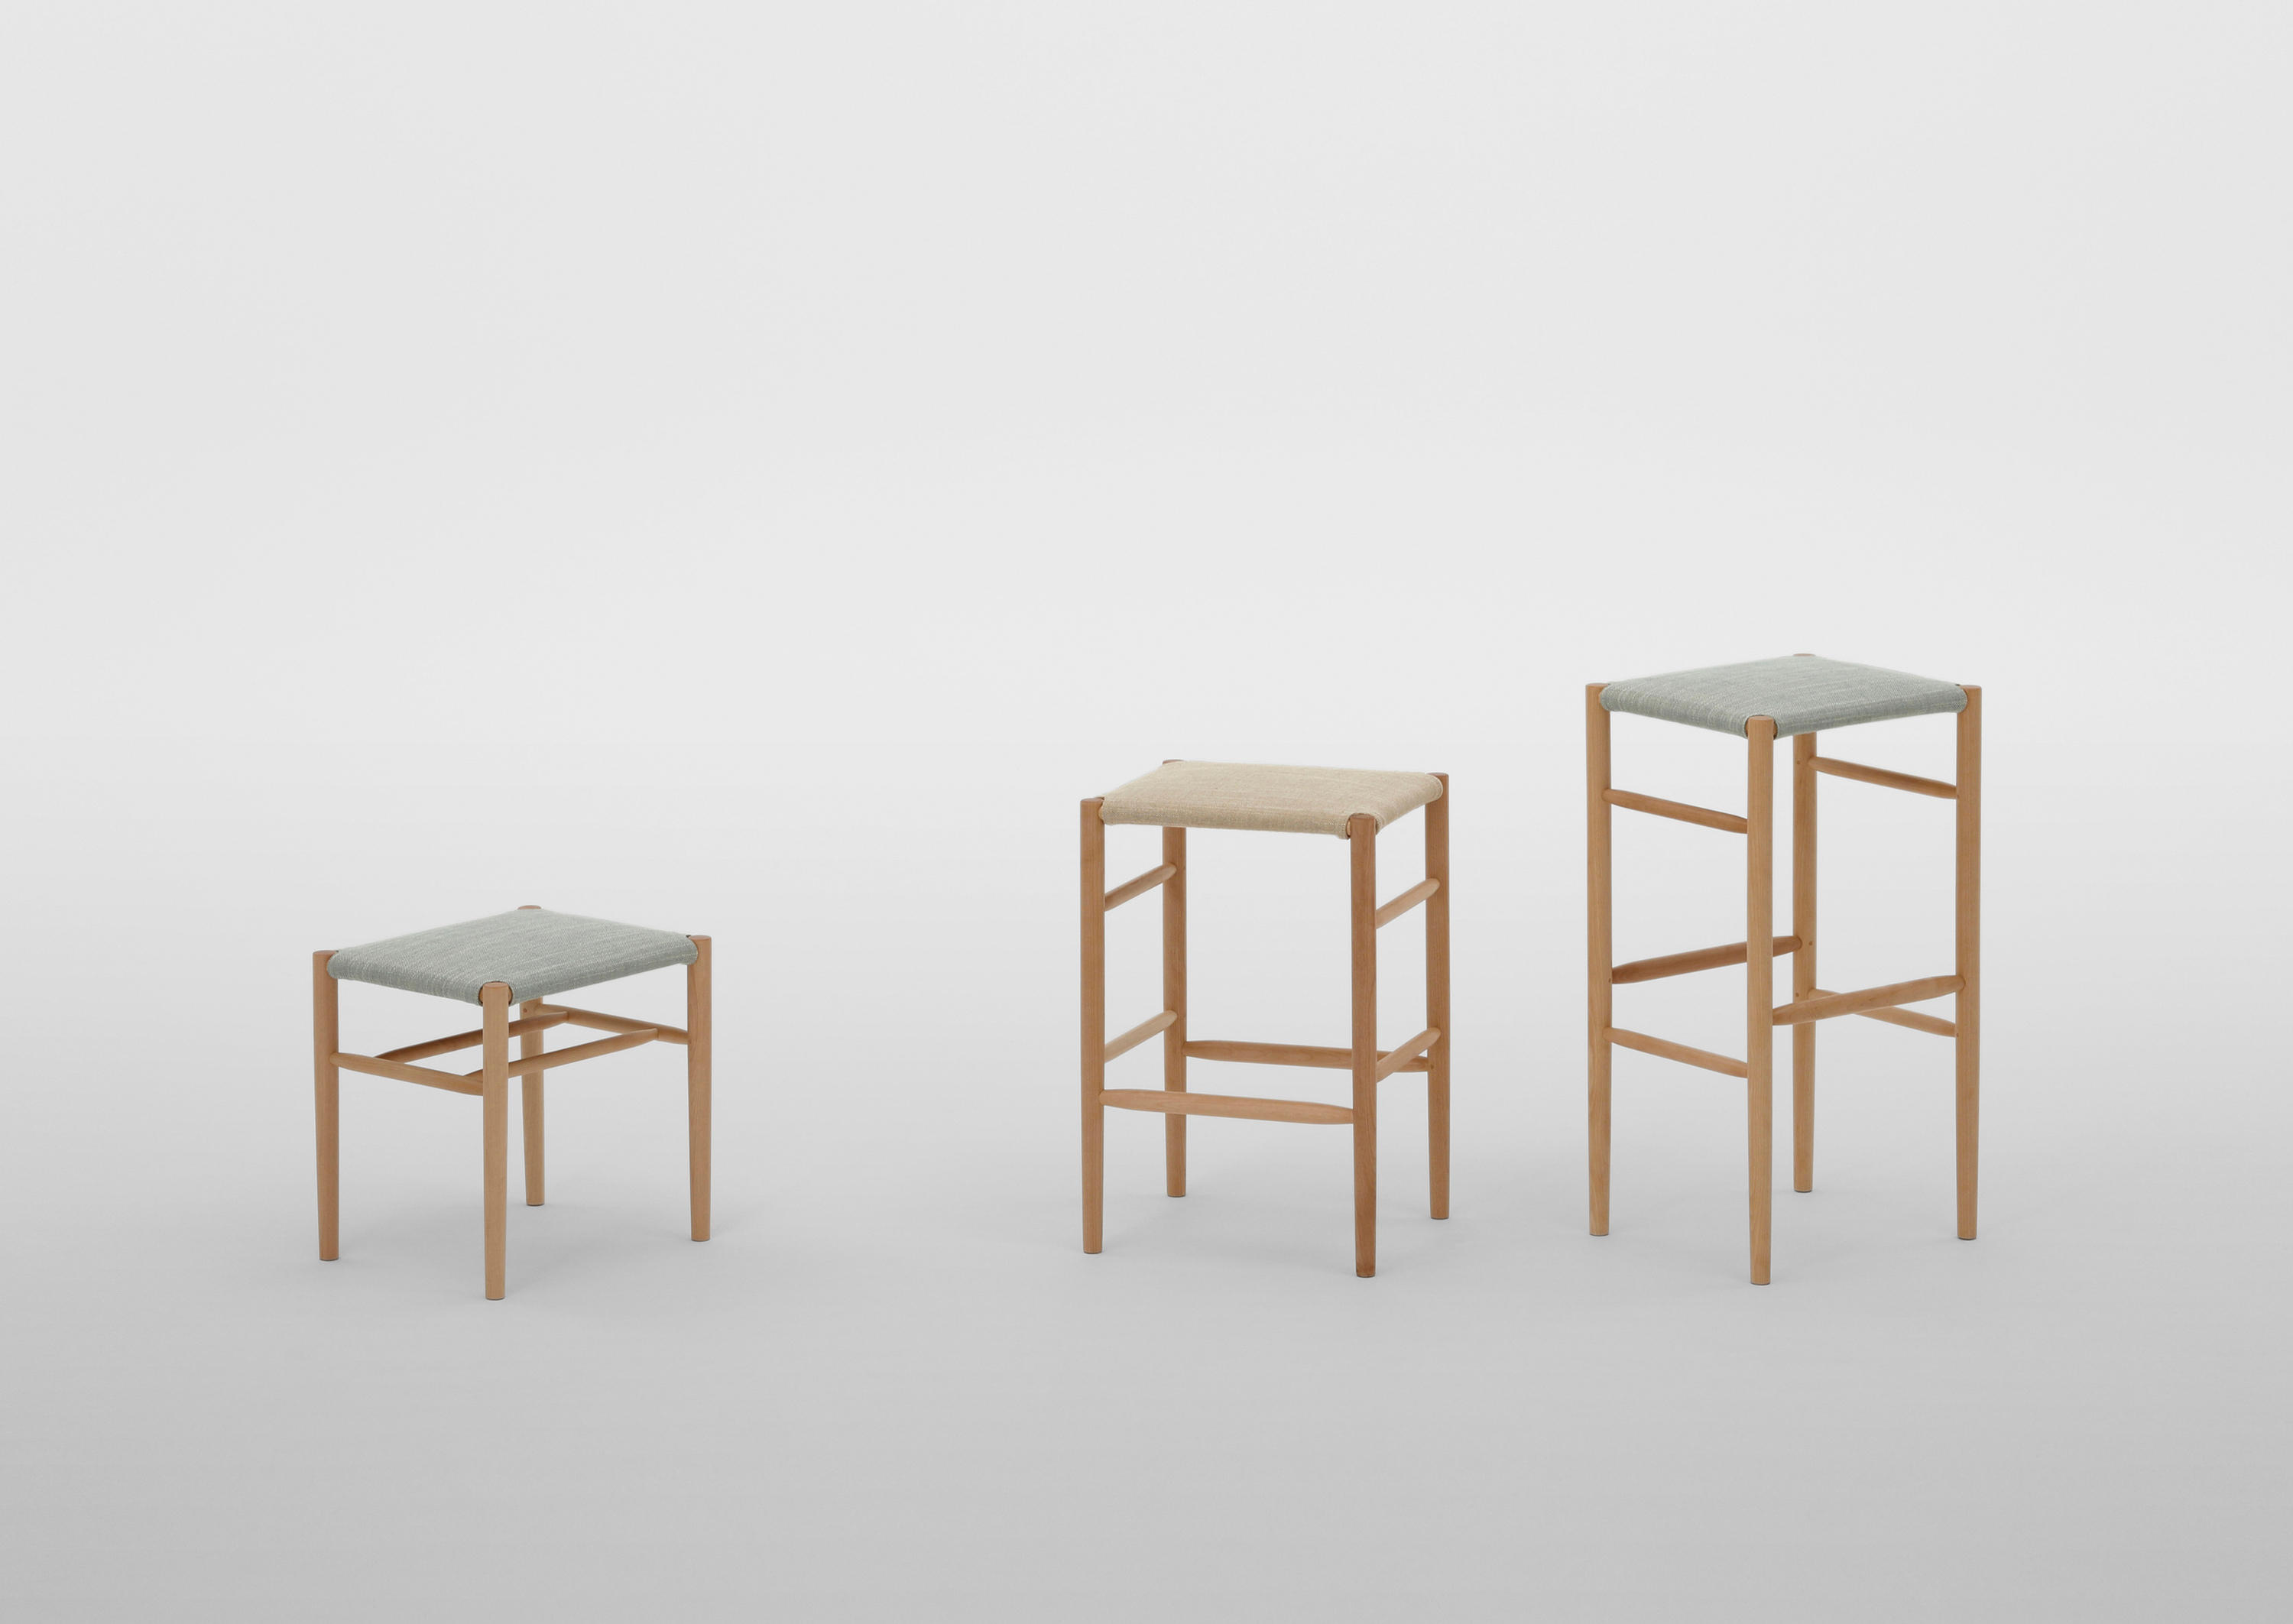 chair mesh stool antique cane bottom rocking lightwood arm seat chairs from maruni architonic by